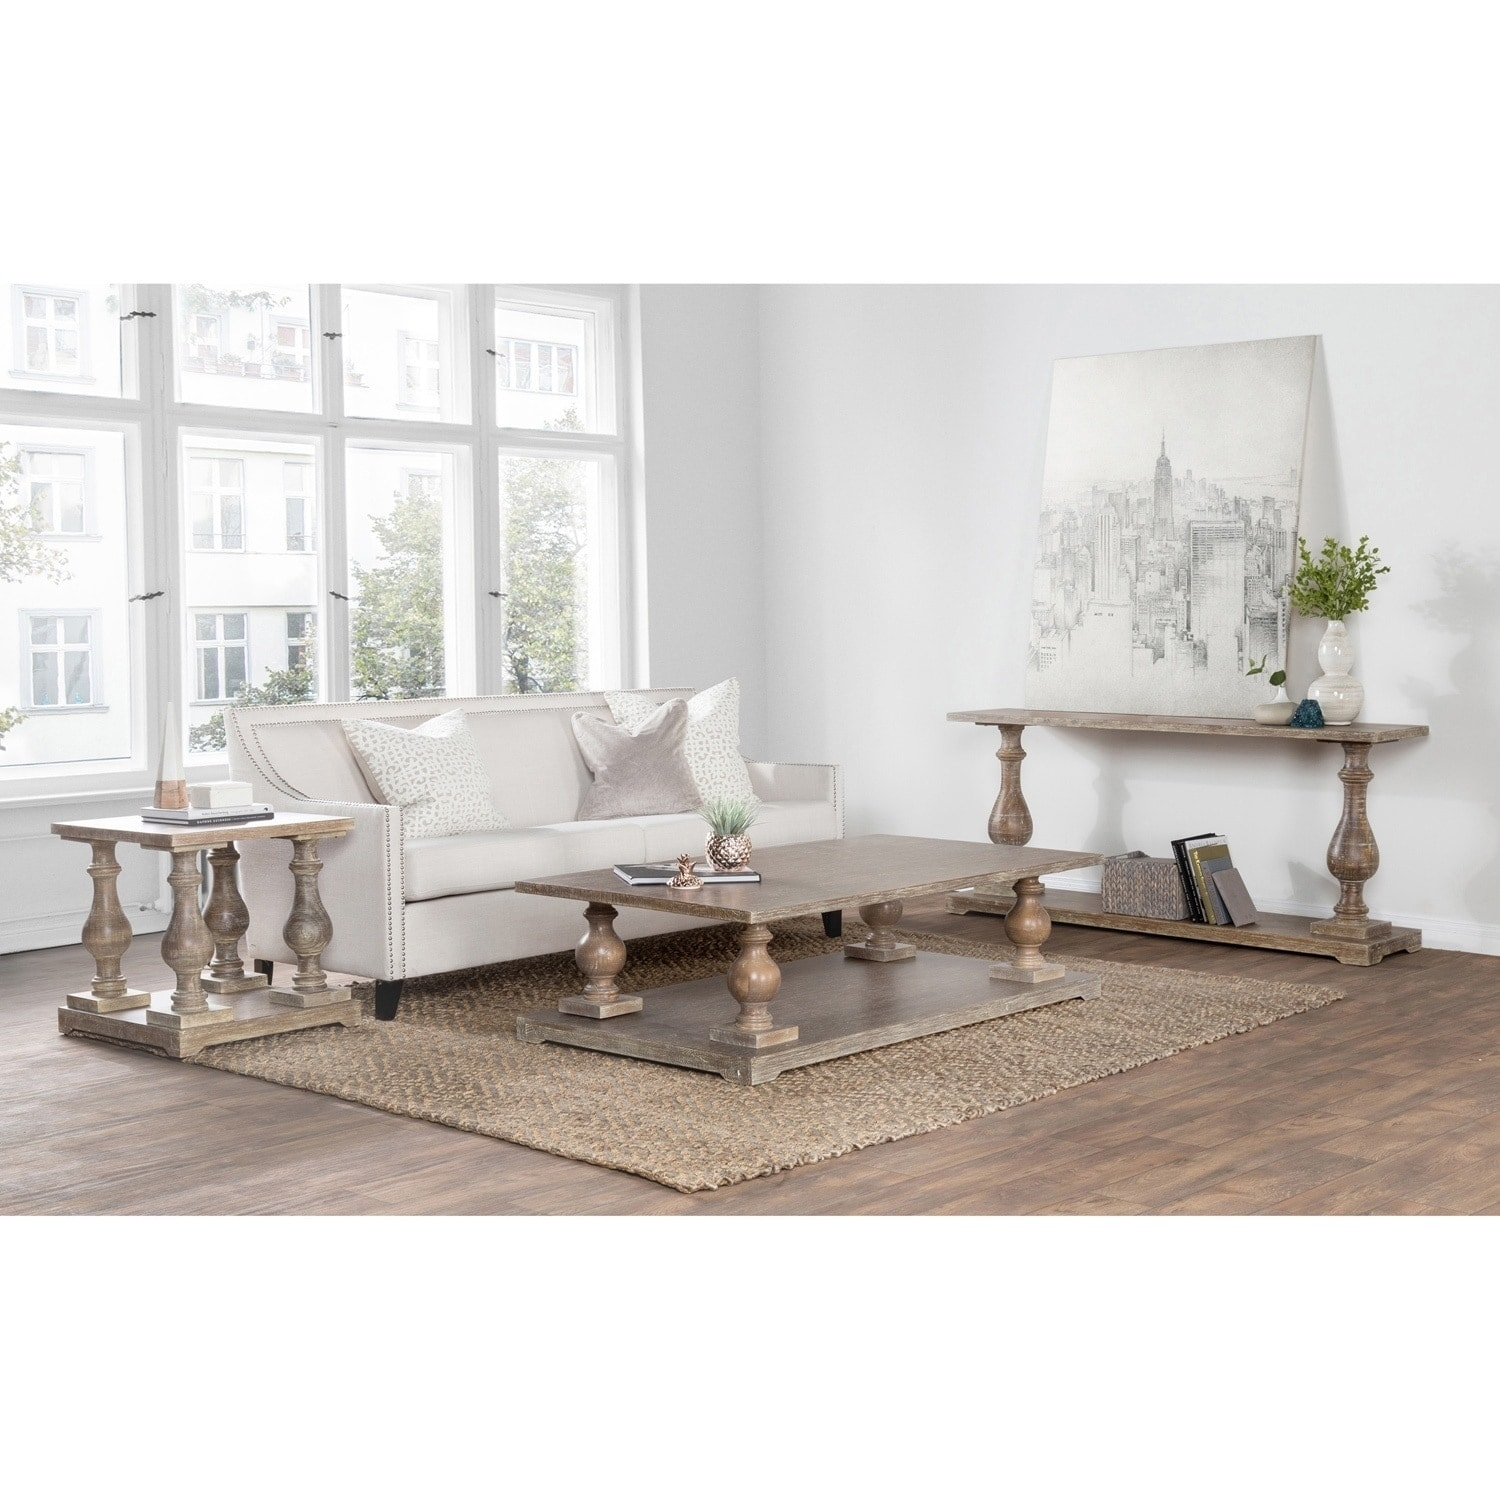 Parvin Hand Crafted Wood Coffee Table By Kosas Home Ships To Canada Ca 10353145